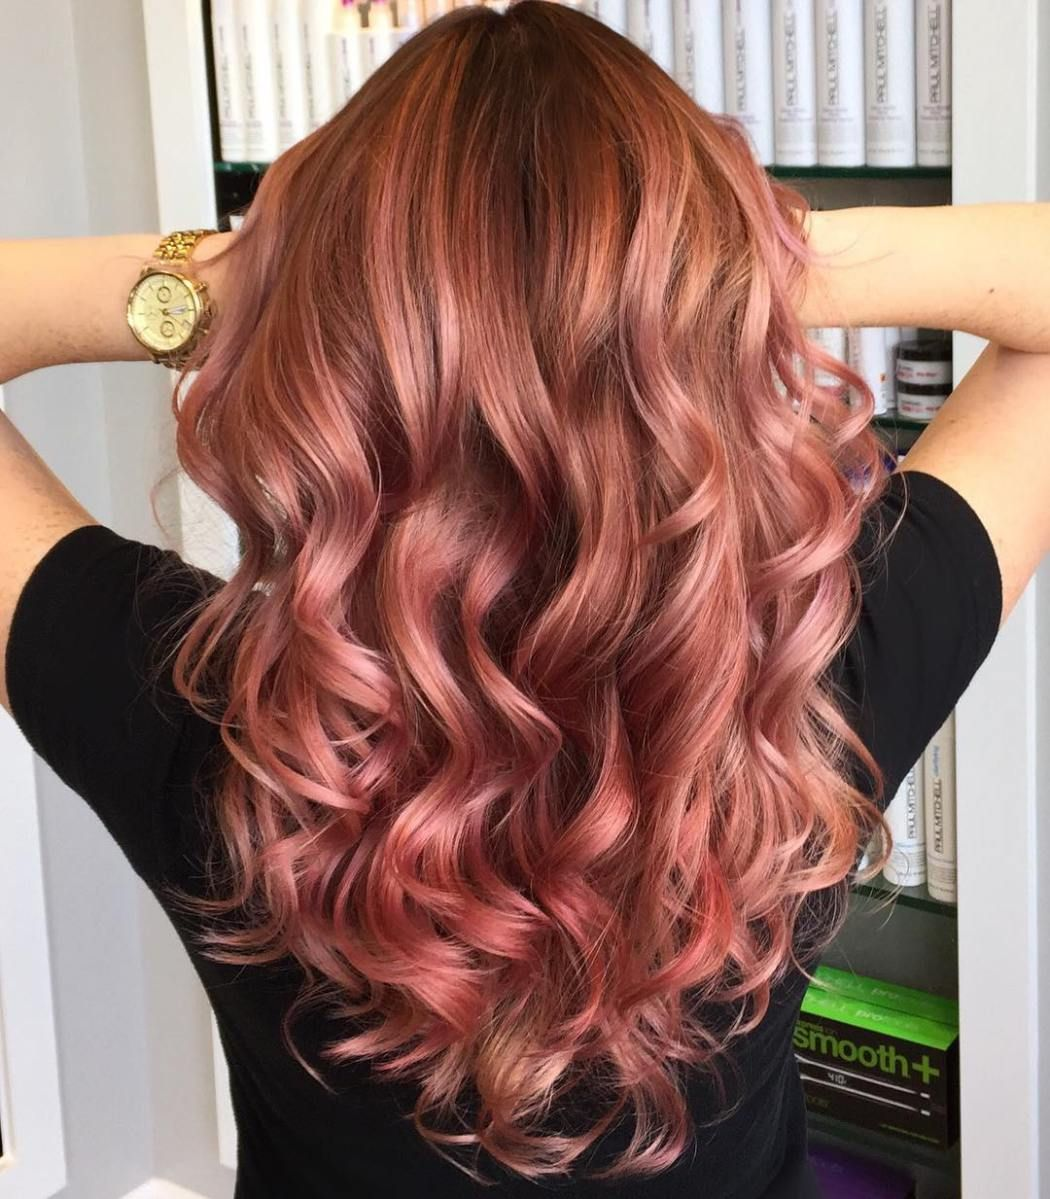 20 Rose Gold Hair Color Ideas Tips How To Dye Rose